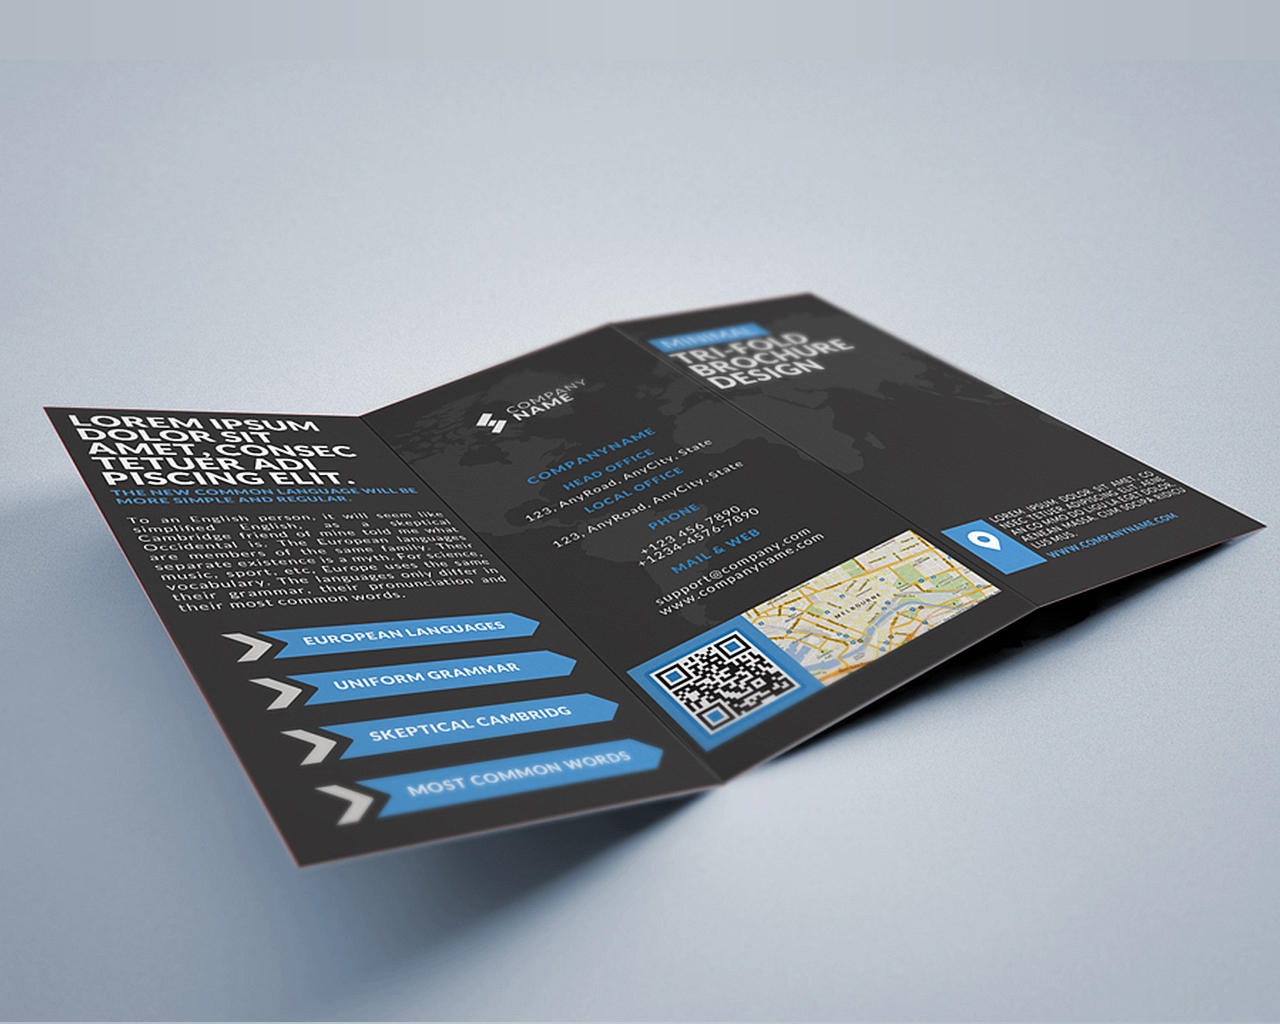 brochure templates envato - trifold brochure design by creativesource online on envato